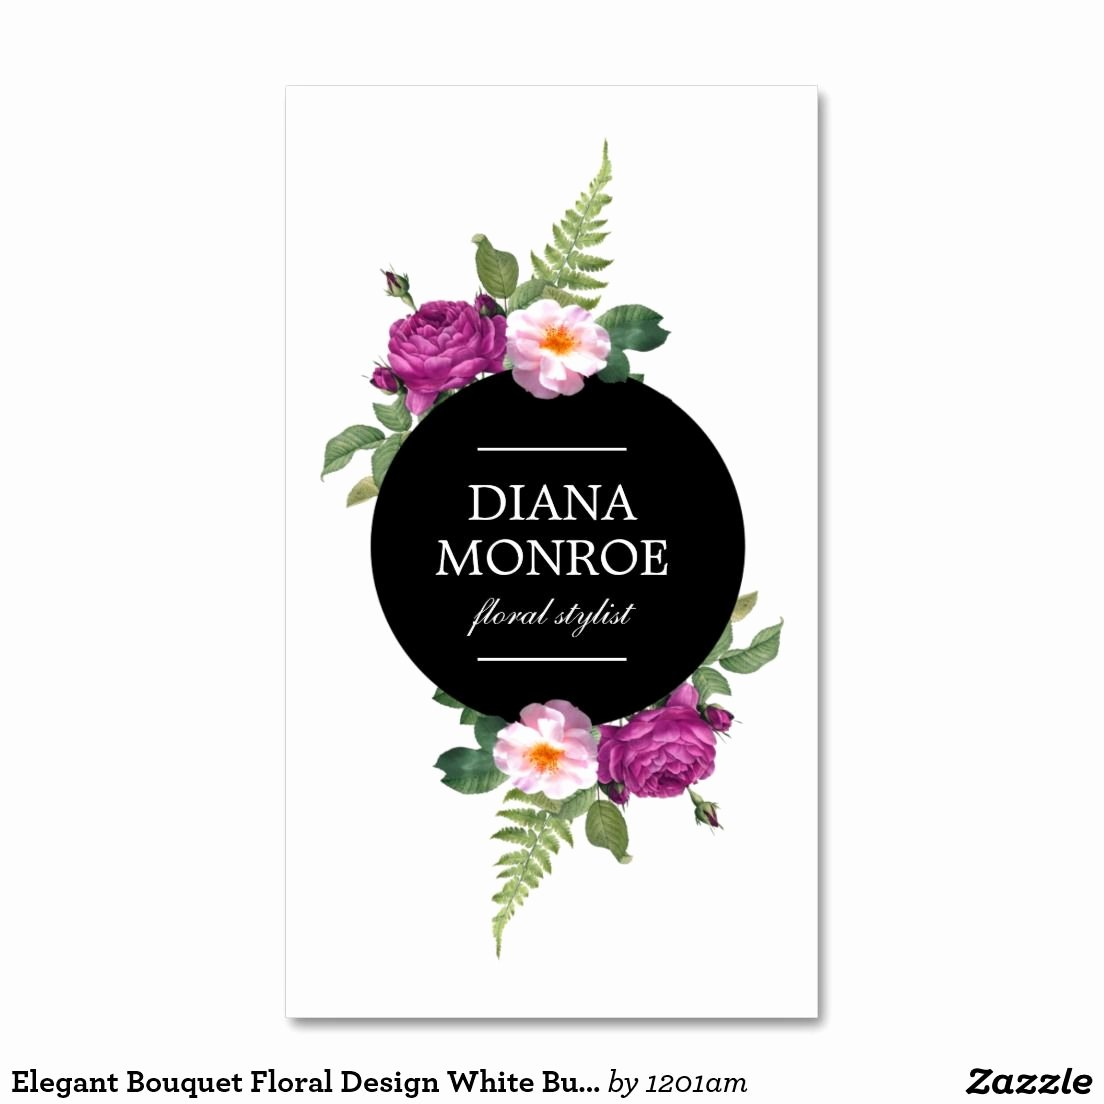 Florist Business Cards Design Awesome Designer Business Card Template for Florists Flower Shops